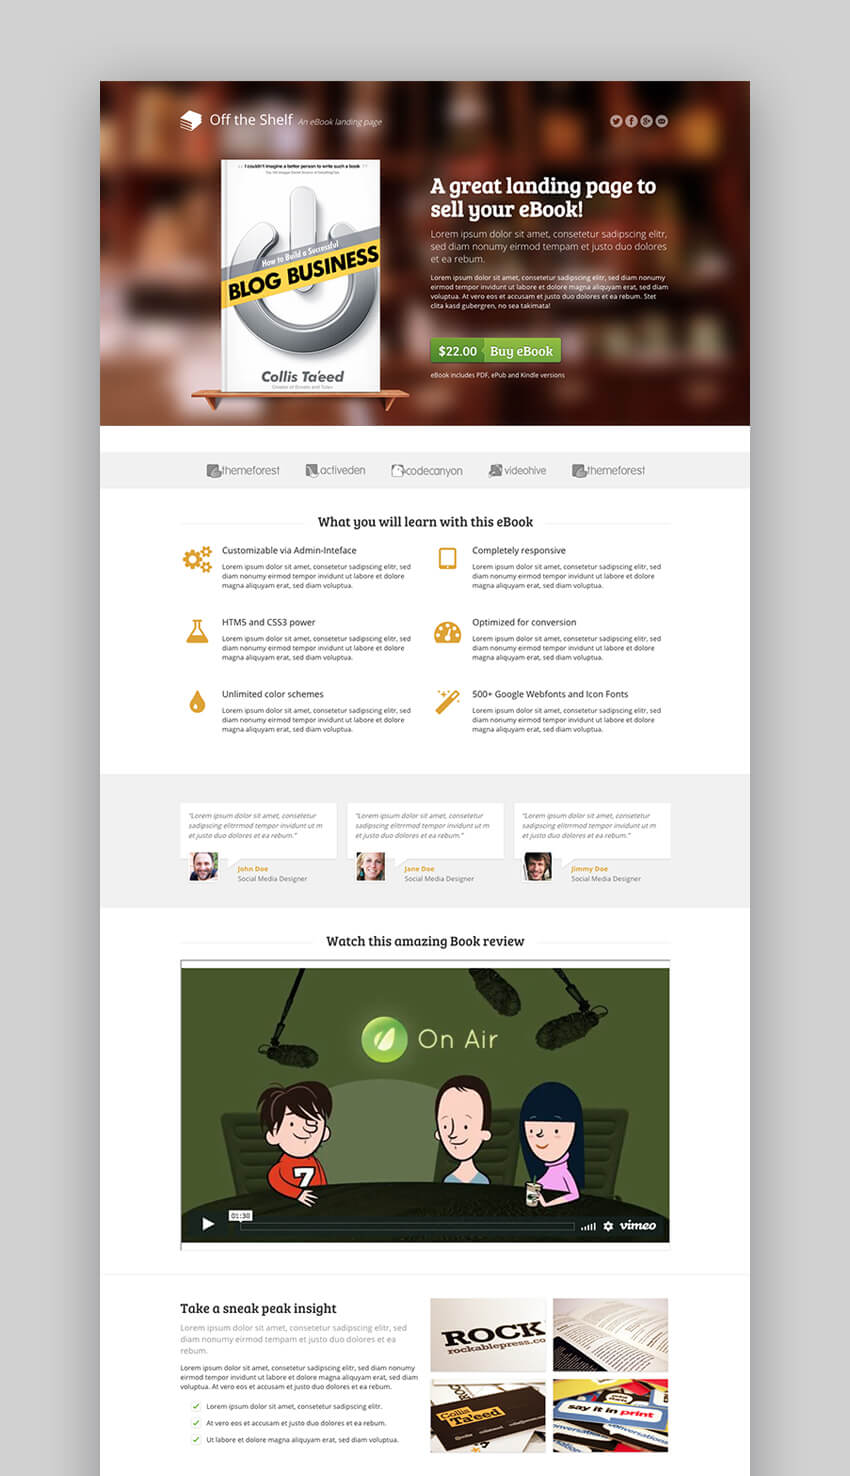 Off the Shelf book landing page template